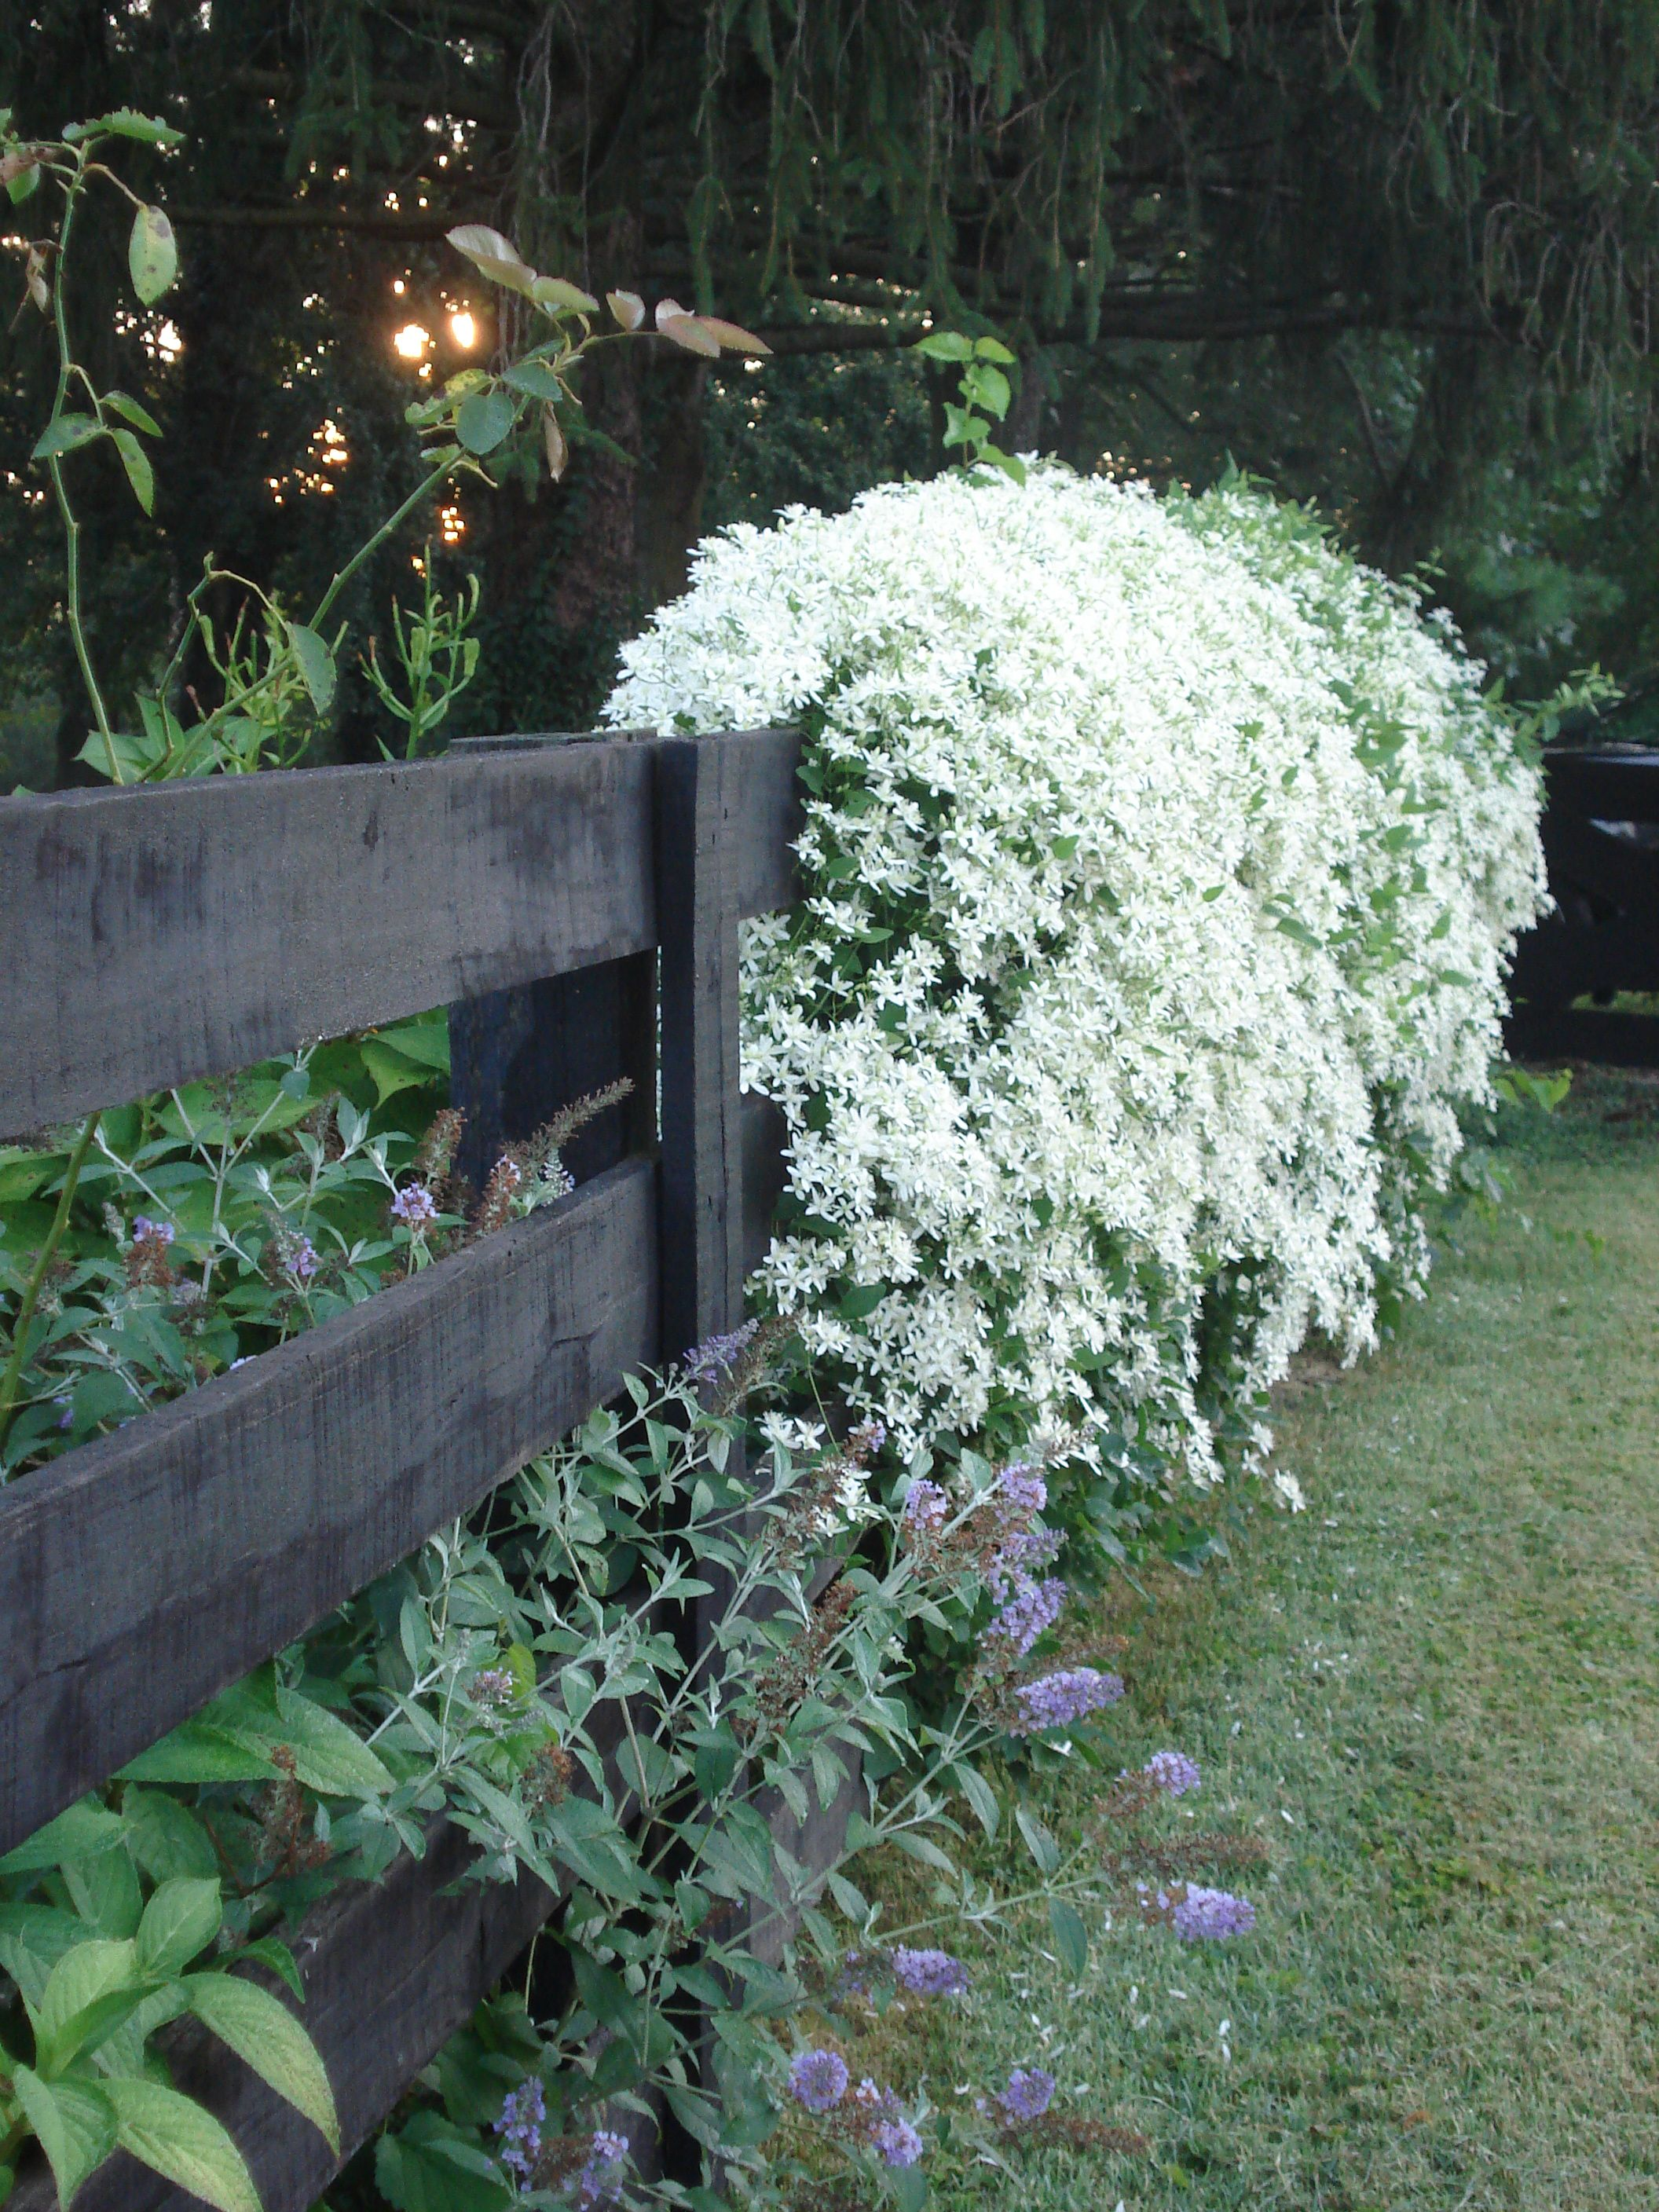 One of my favorite fall garden plants is the showy clematis